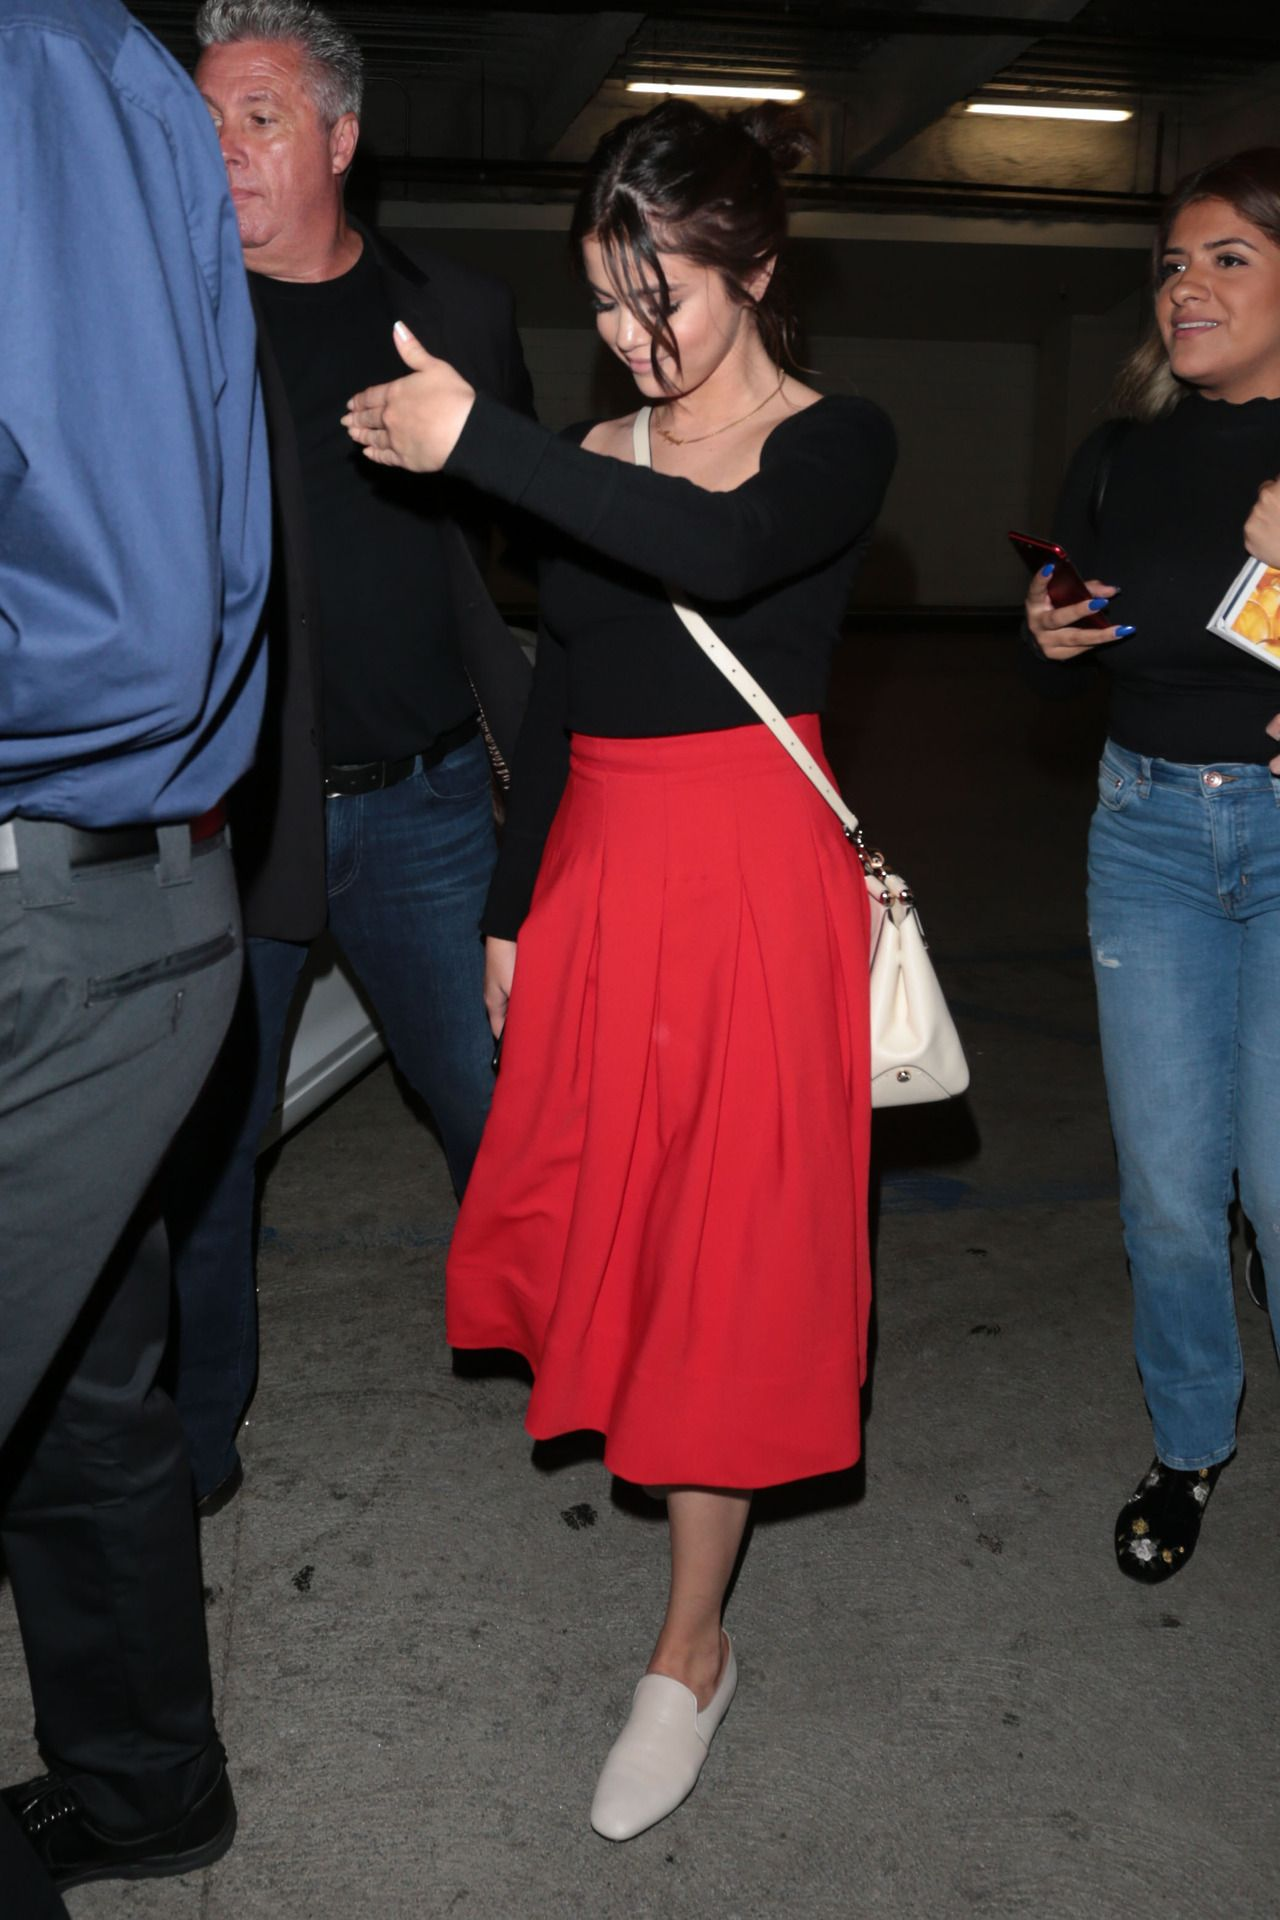 August 19: Selena leaving ArcLight Hollywood in Los Angeles, California